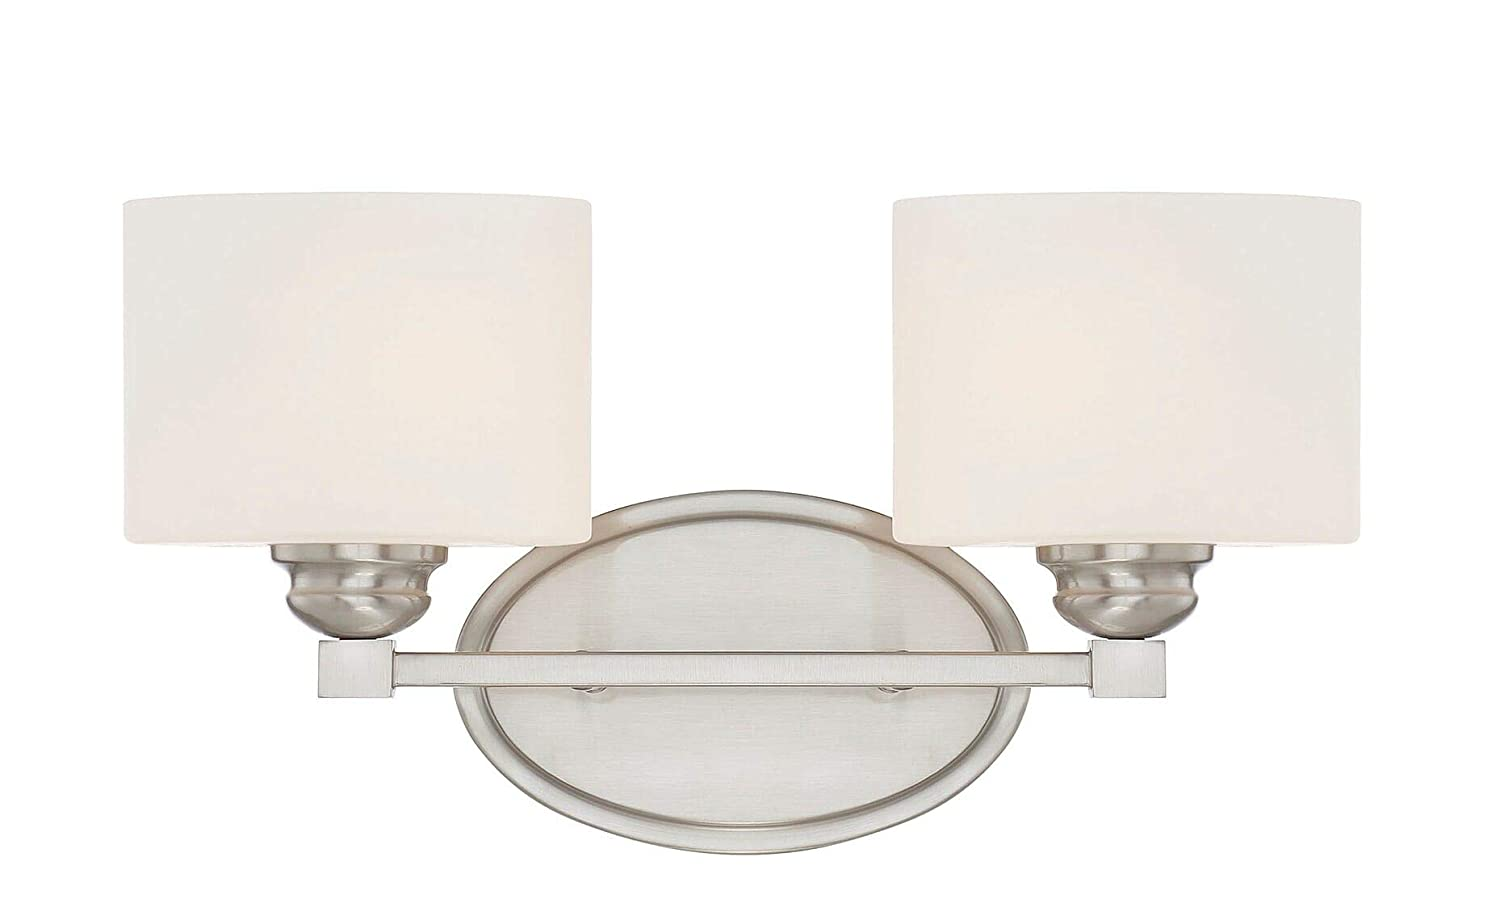 Savoy House 8-890-2-SN Kane 2-Light Bathroom Vanity Light in a Satin Nickel Finish with White Etched Glass 16 W x 8.5 H